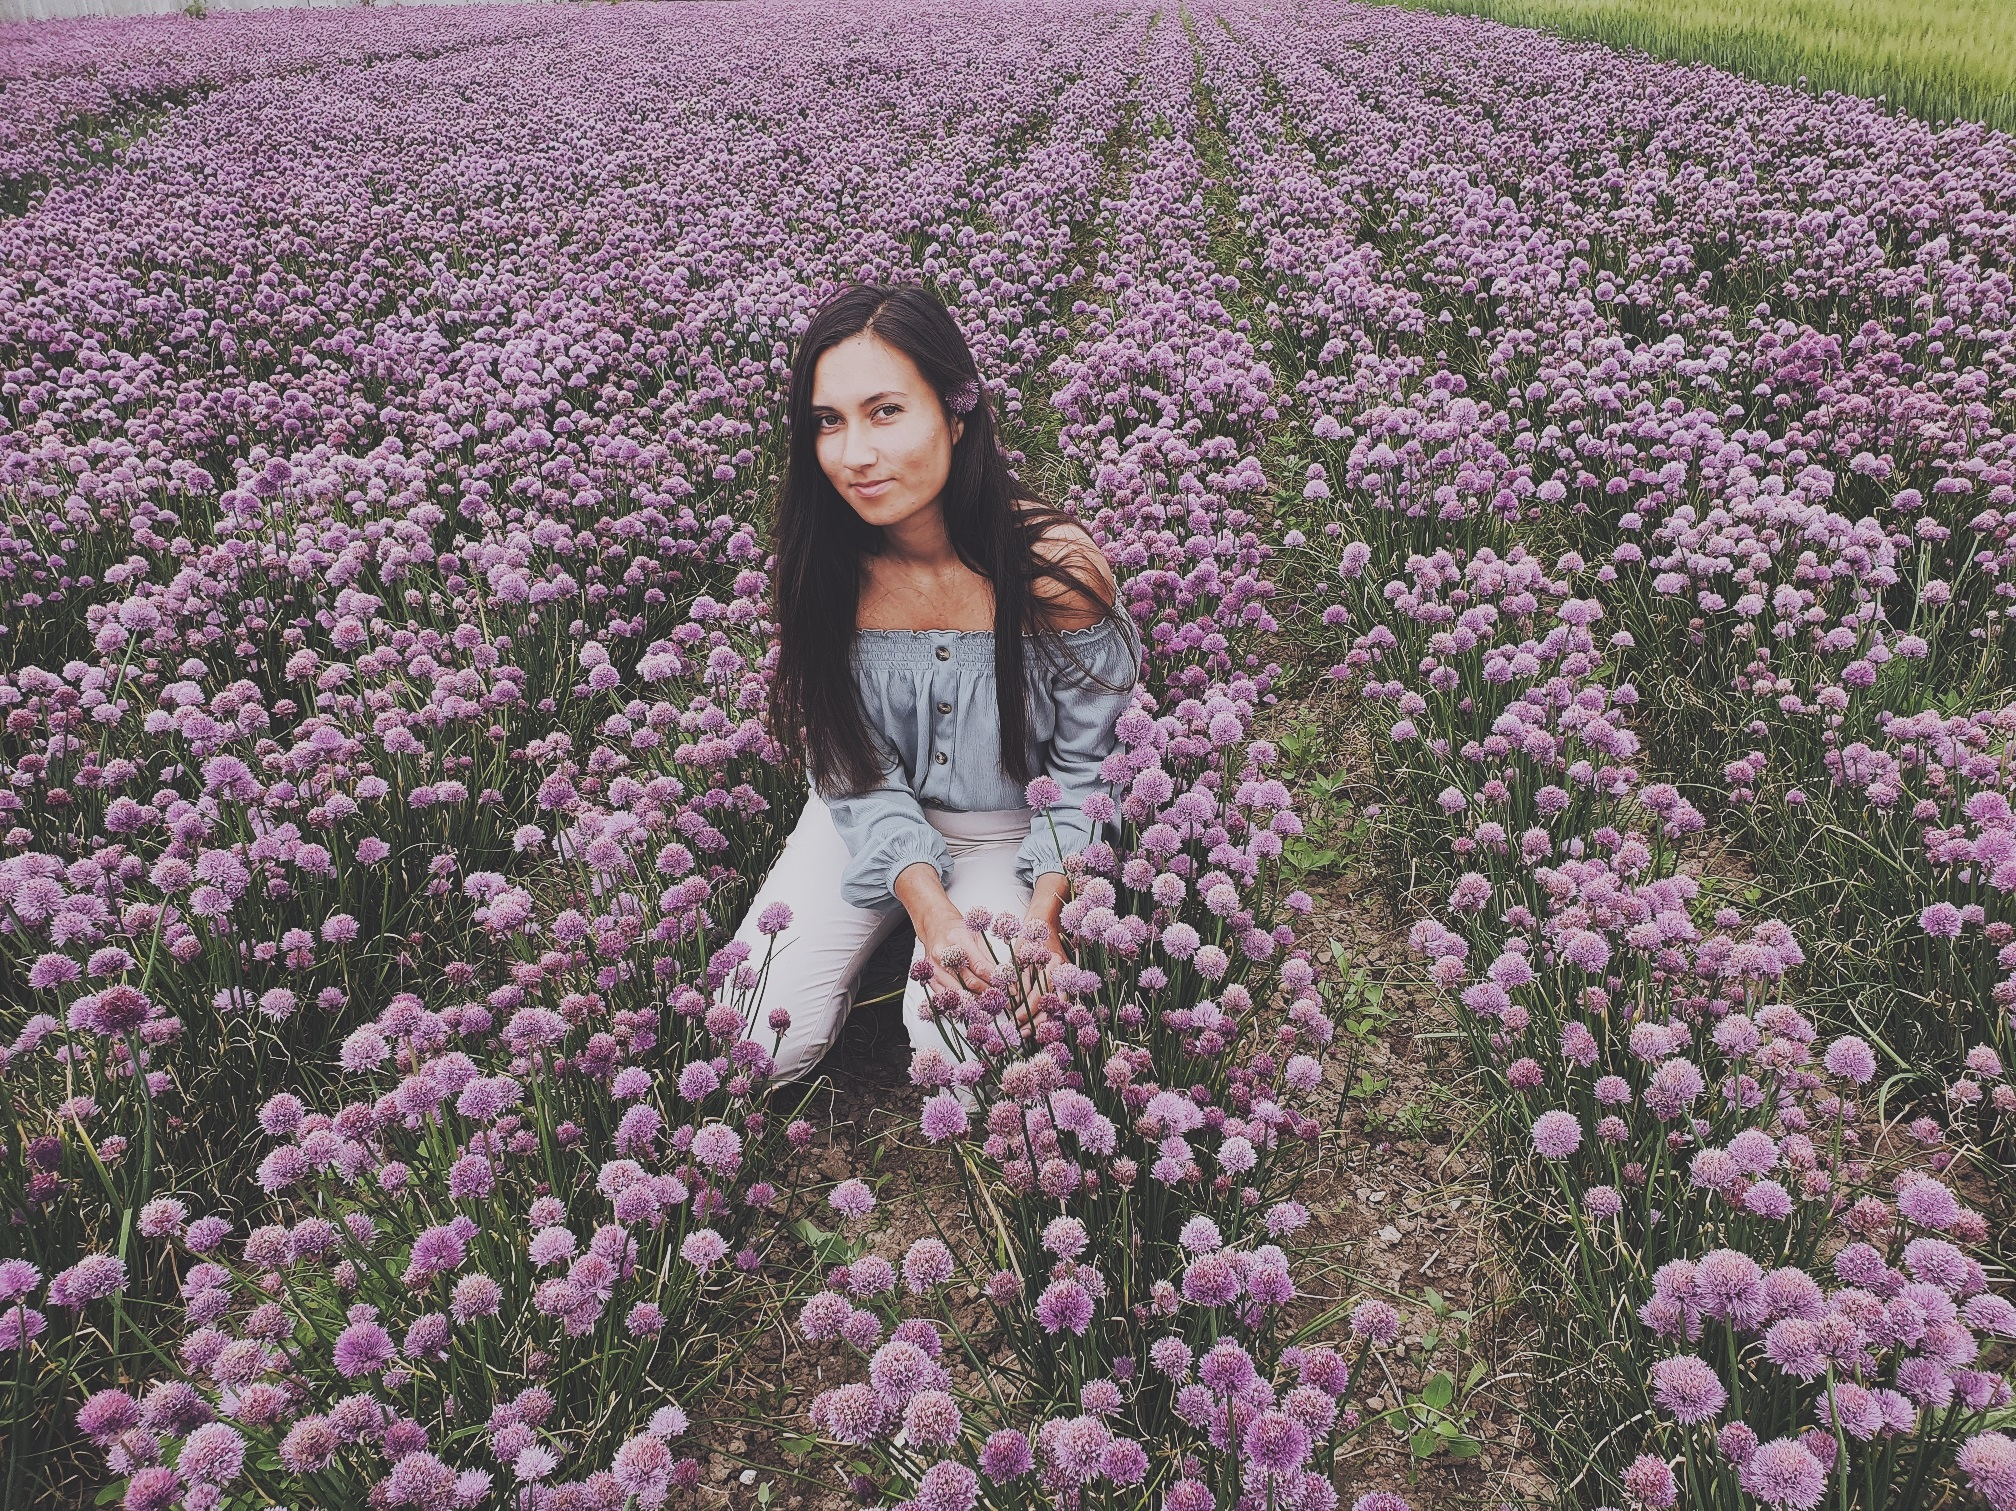 my posing friend in a flower field